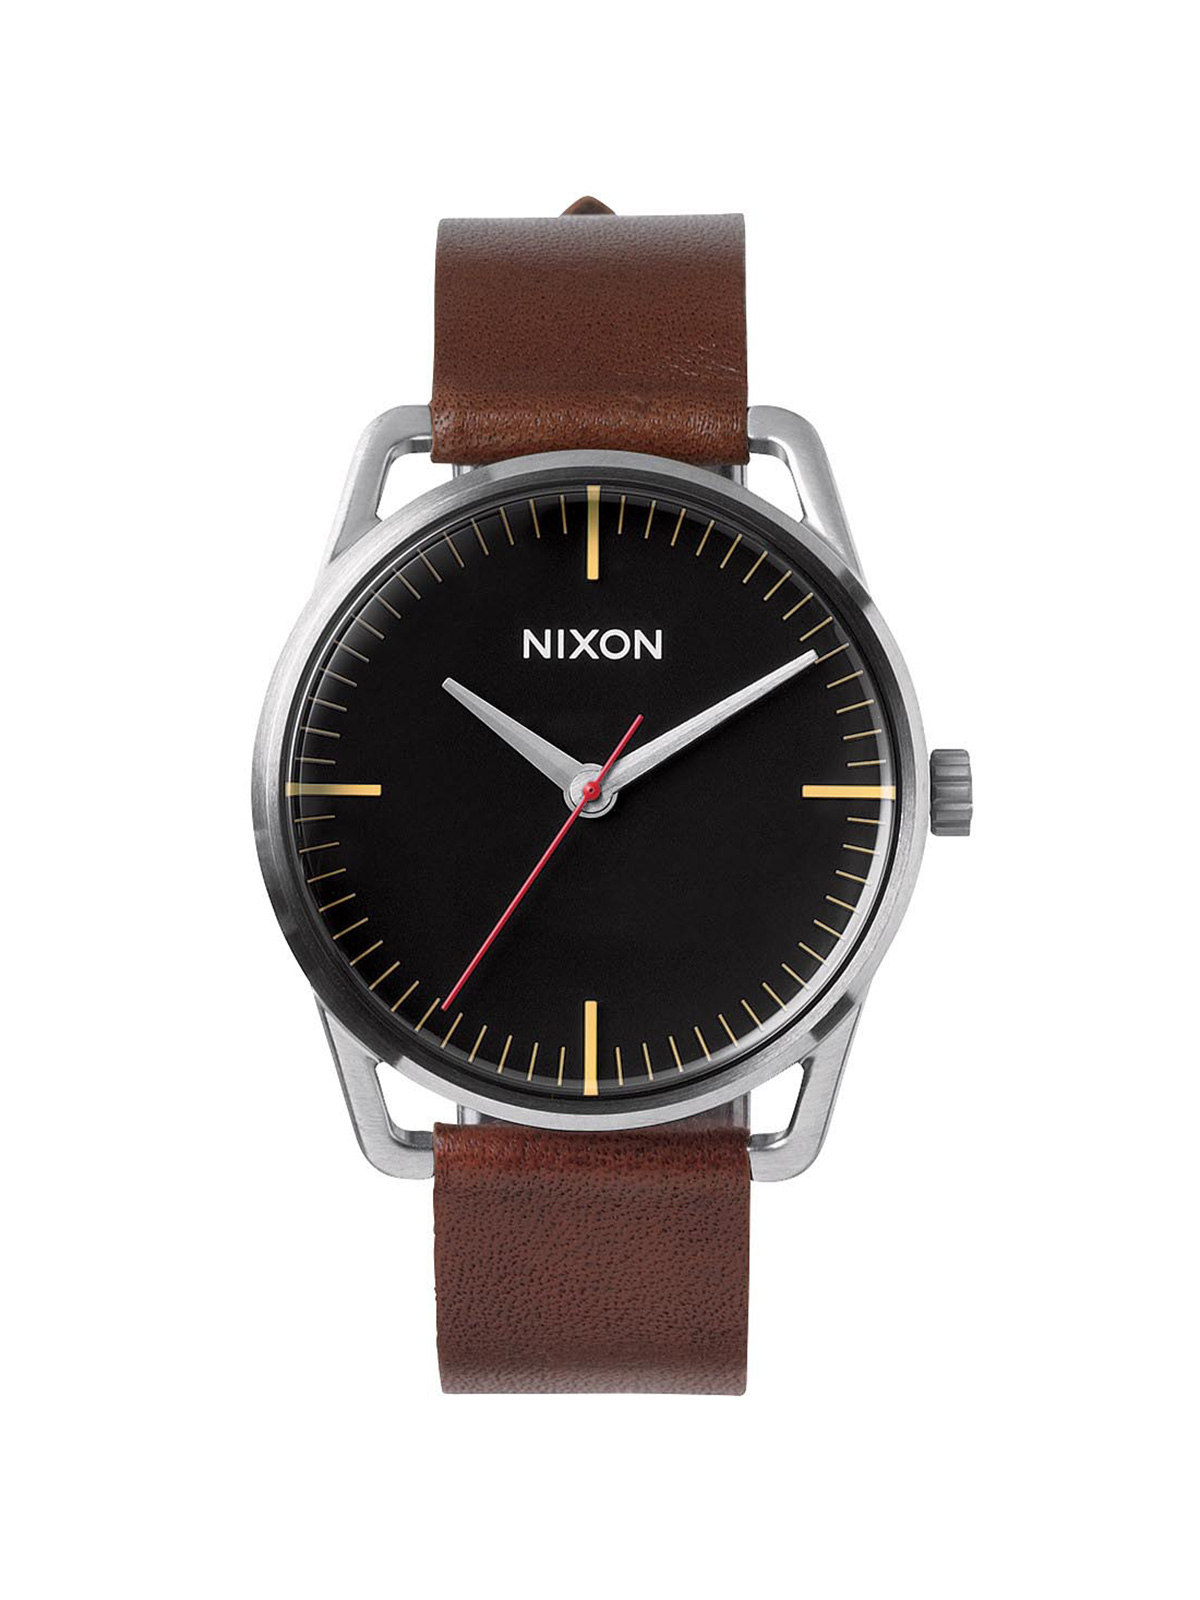 NIXON MEN'S MELLOR BLACK/BROWN